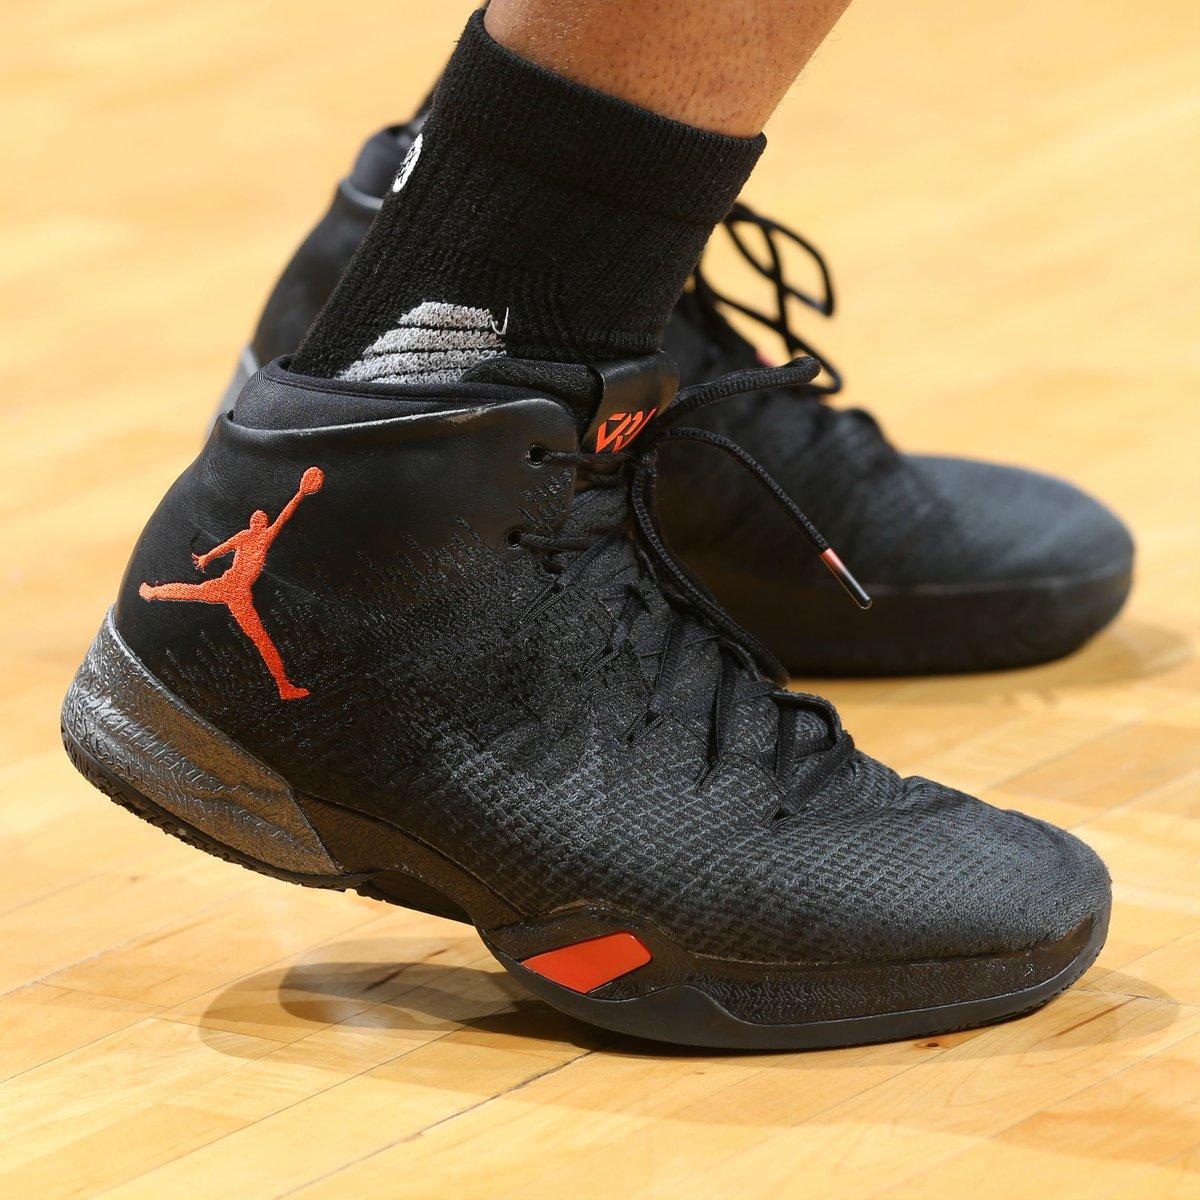 9926b1512e8  solewatch   russwest44 wearing an air jordan 30.5 pe. will he break the  triple-double record in these